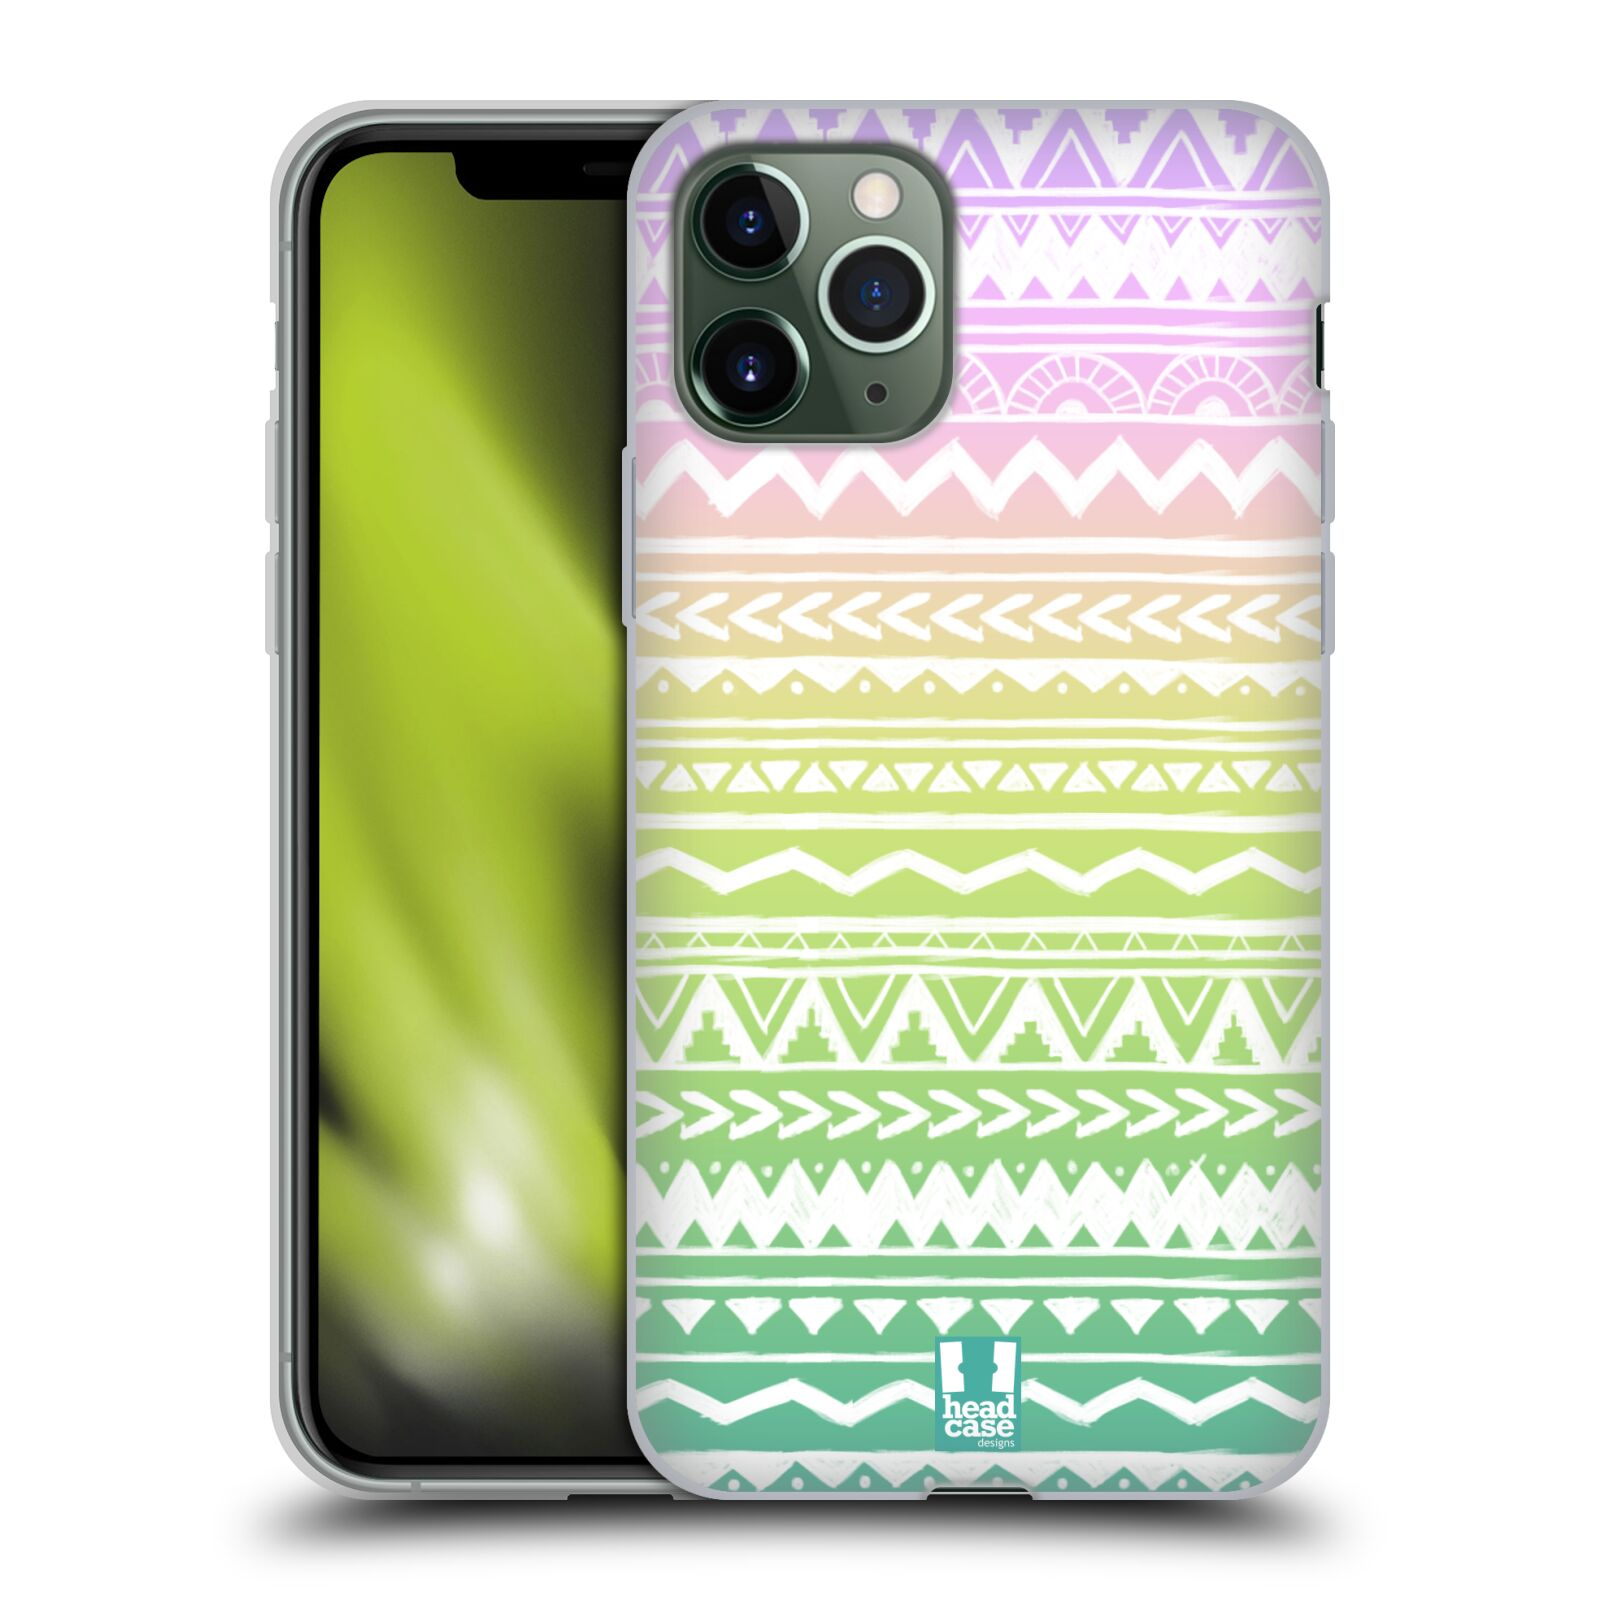 bazar krytu na iphone 6s plus - Silikonové pouzdro na mobil Apple iPhone 11 Pro - Head Case - MIX AZTEC DRAWN